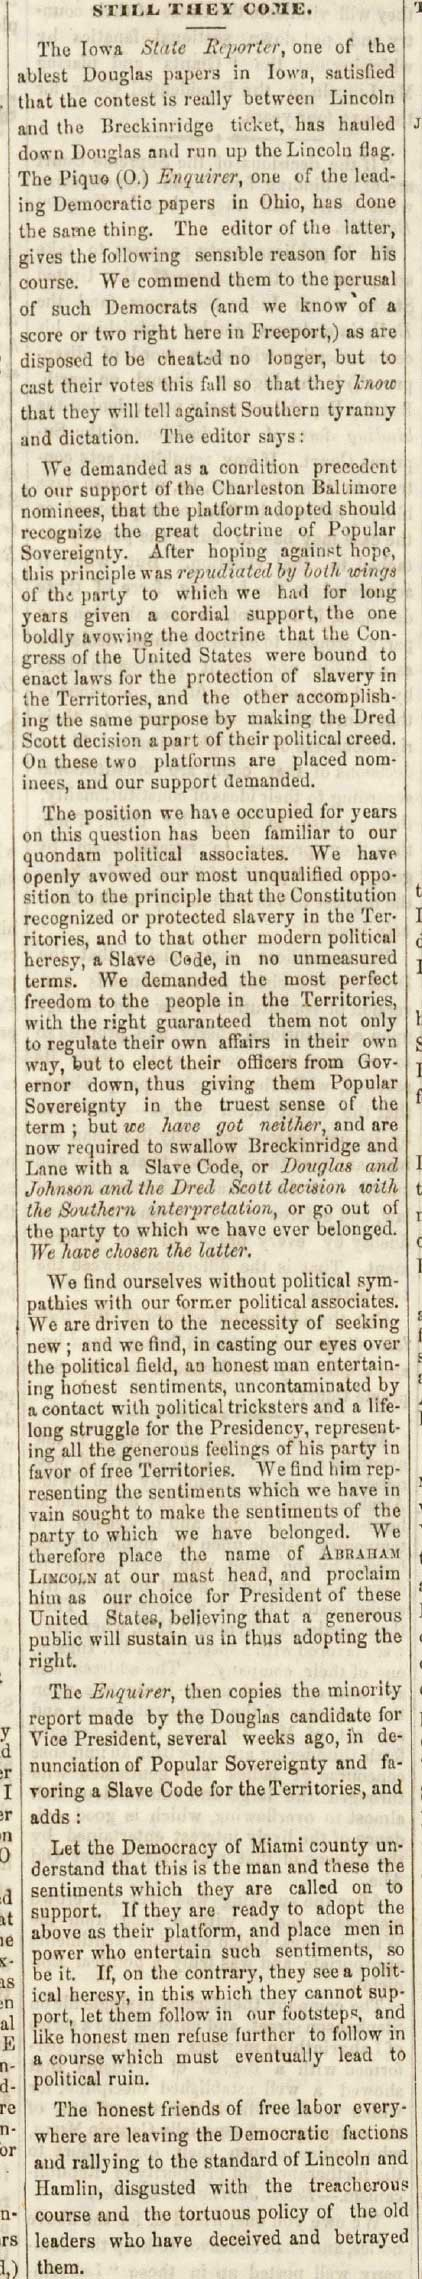 Freeport Wide Awake Abraham Lincoln Campaign Newspaper August 18, 1860 Article